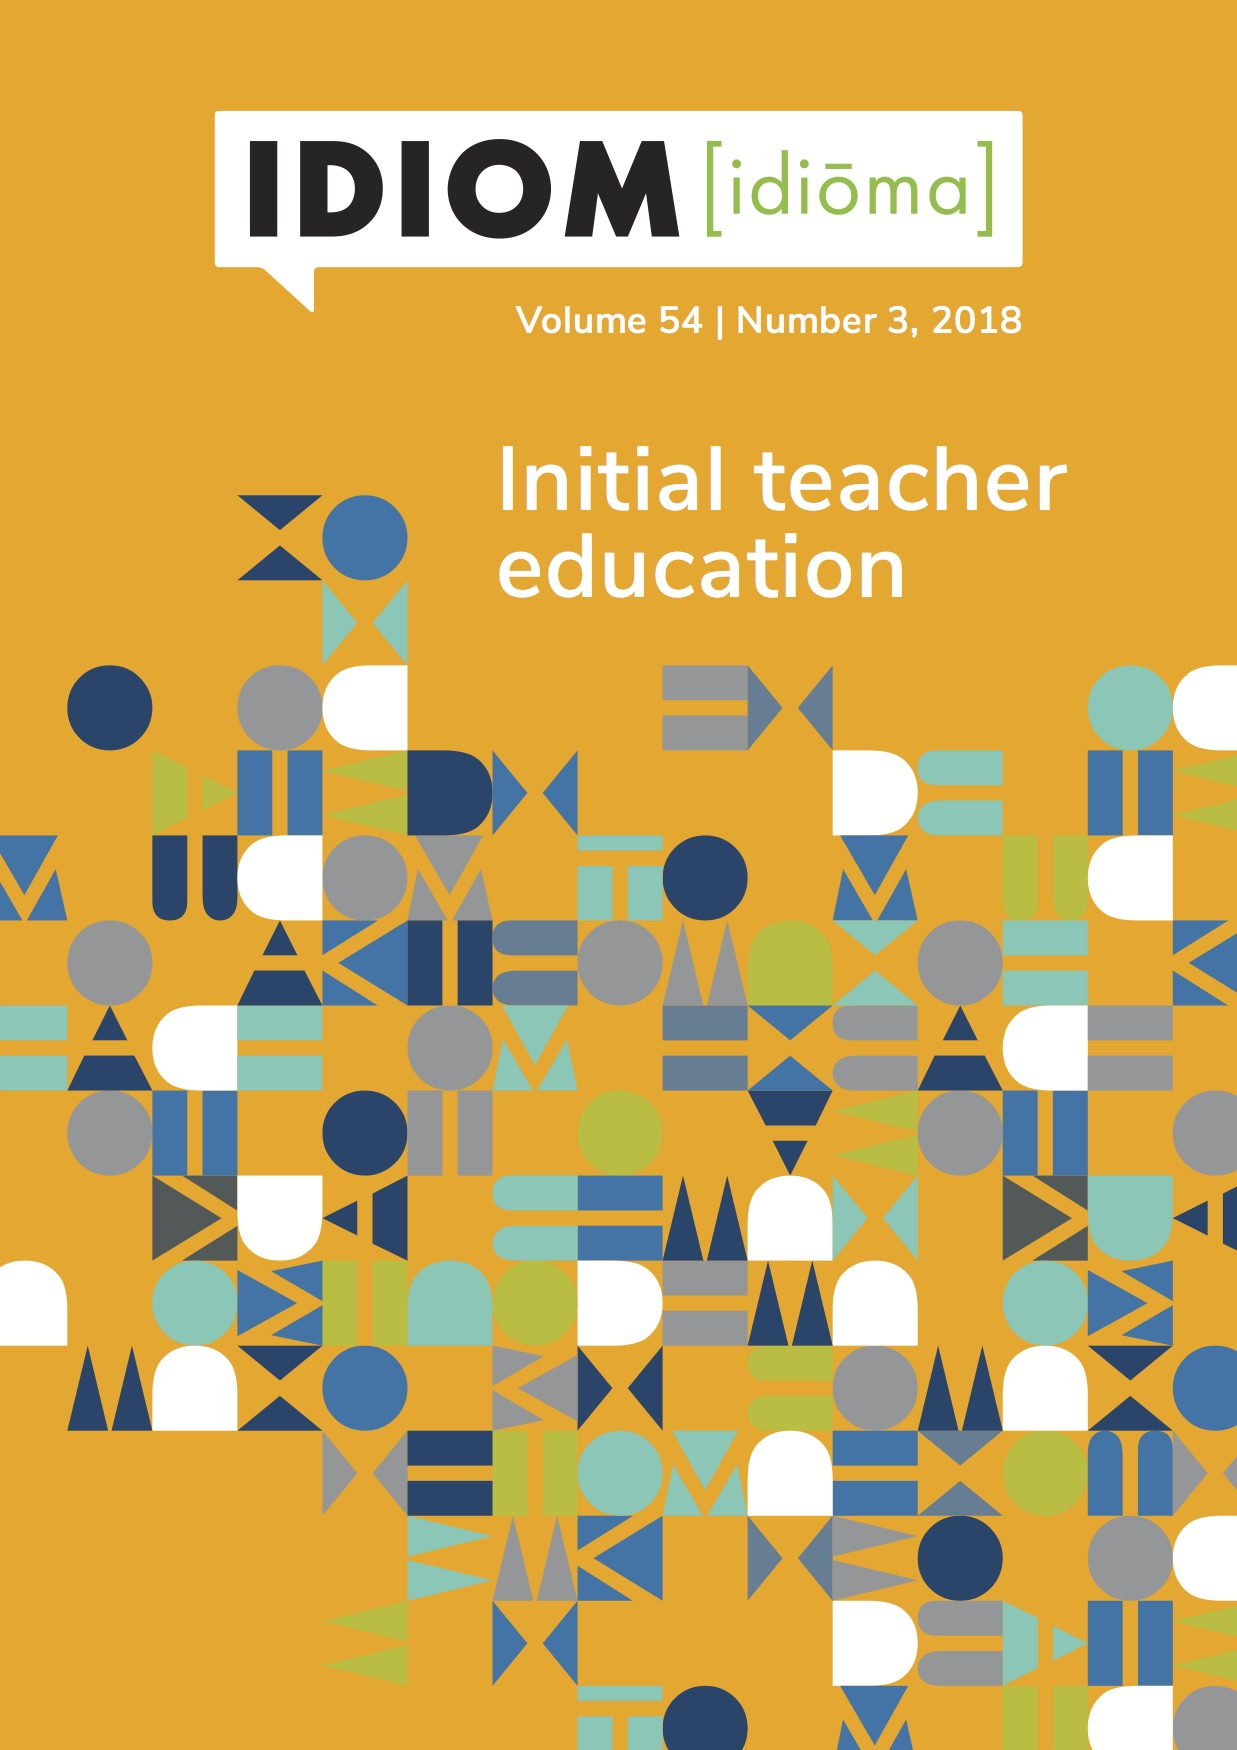 Idiom Volume 54 No 3, 2018 - Initial teacher education